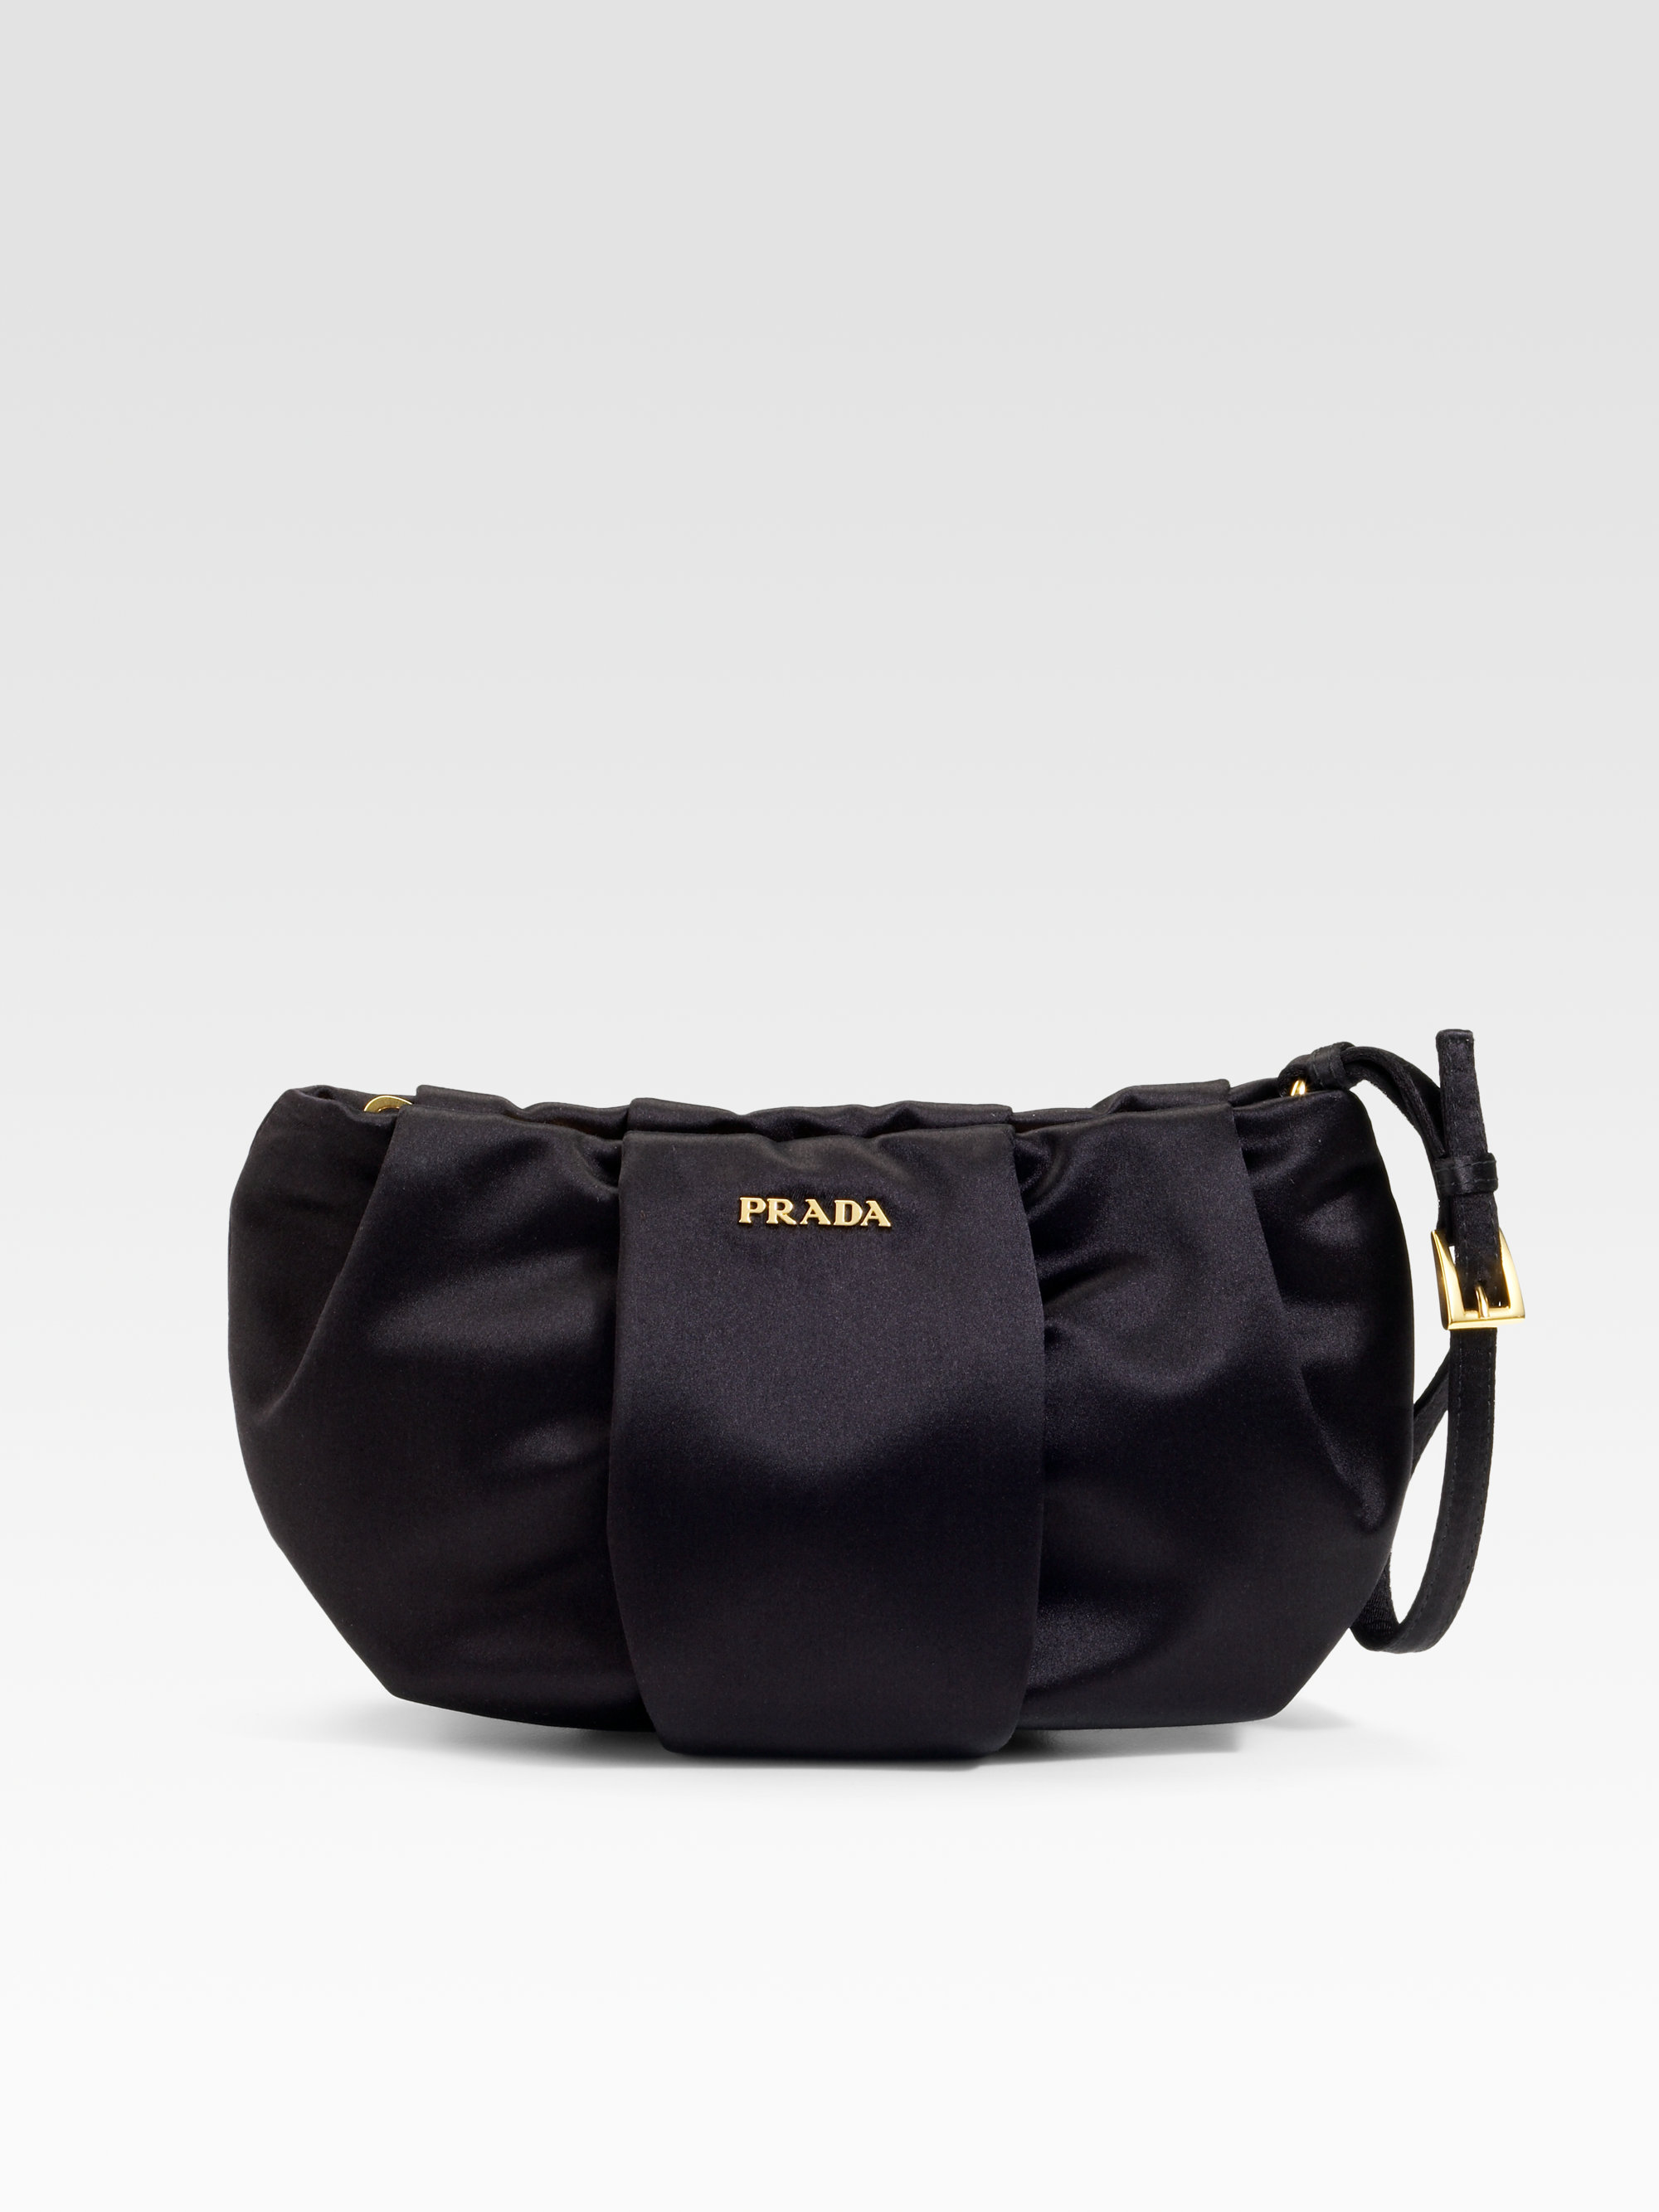 956376b97e37 Lyst - Prada Satin Wristlet in Black